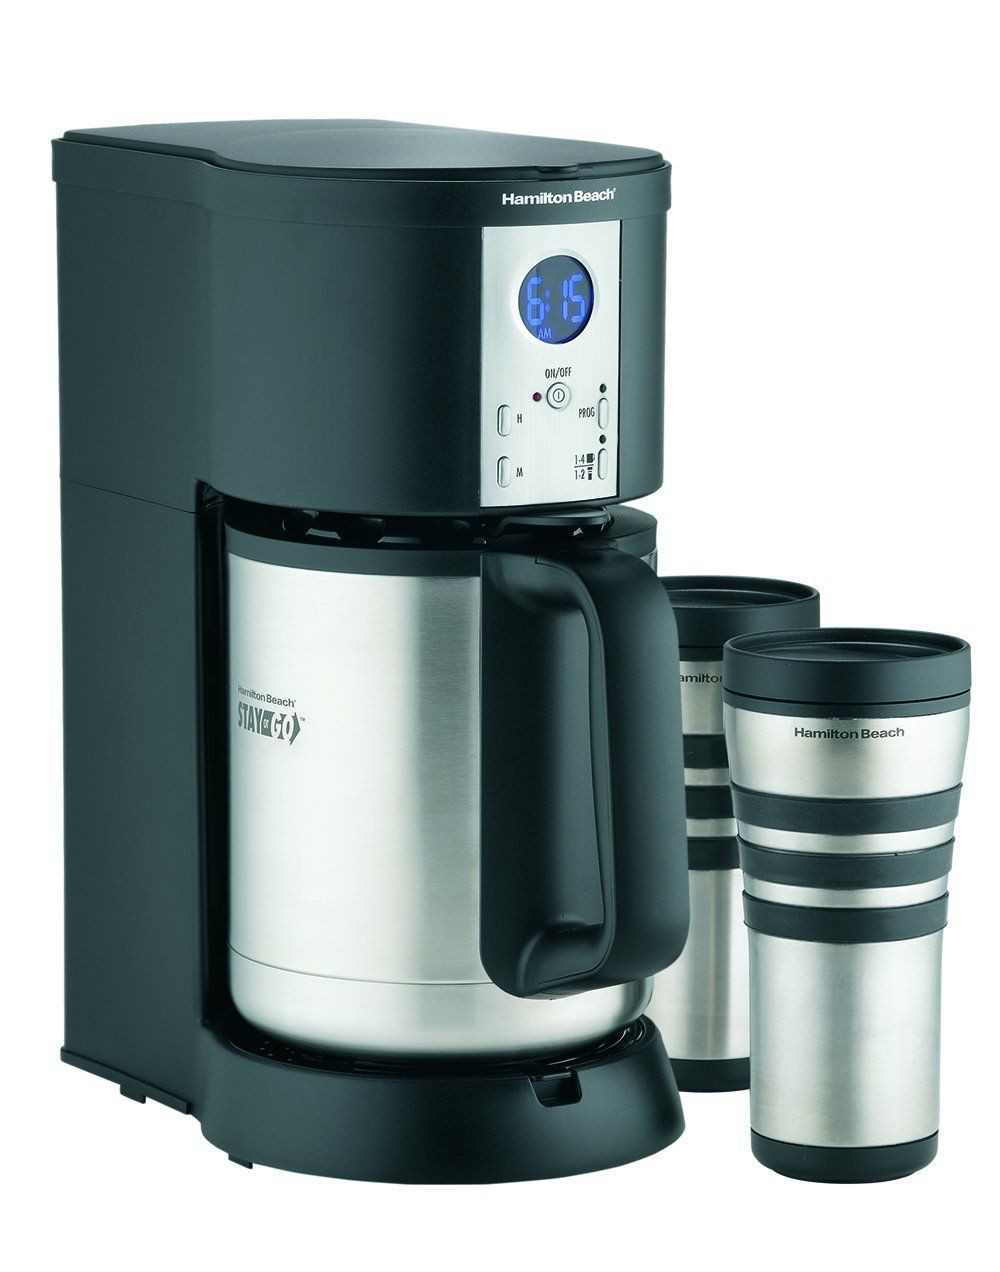 Hamilton Beach Coffee Maker Stay Or Go Digital With Thermal